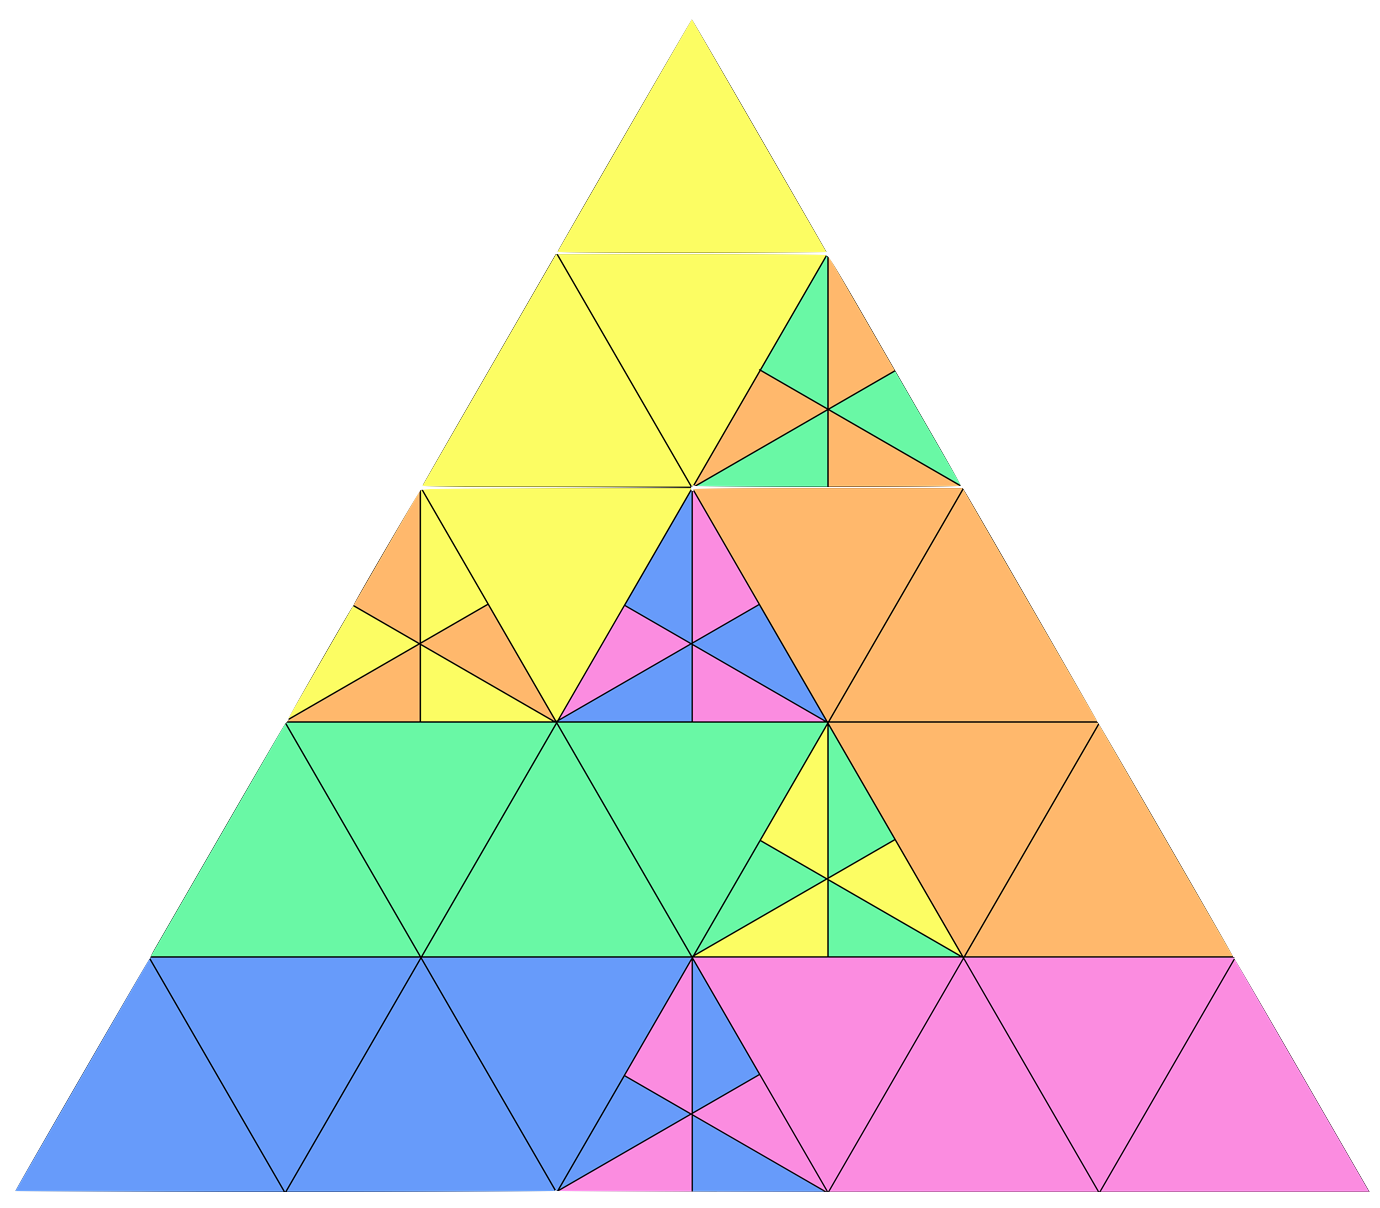 It S Easy To Divide An Equilateral Triangle Into N 2 2n 2 3n 2 Or 6n 2 Equal Triangles But Can You Divide An Equ Triangle Divider Triangle Building